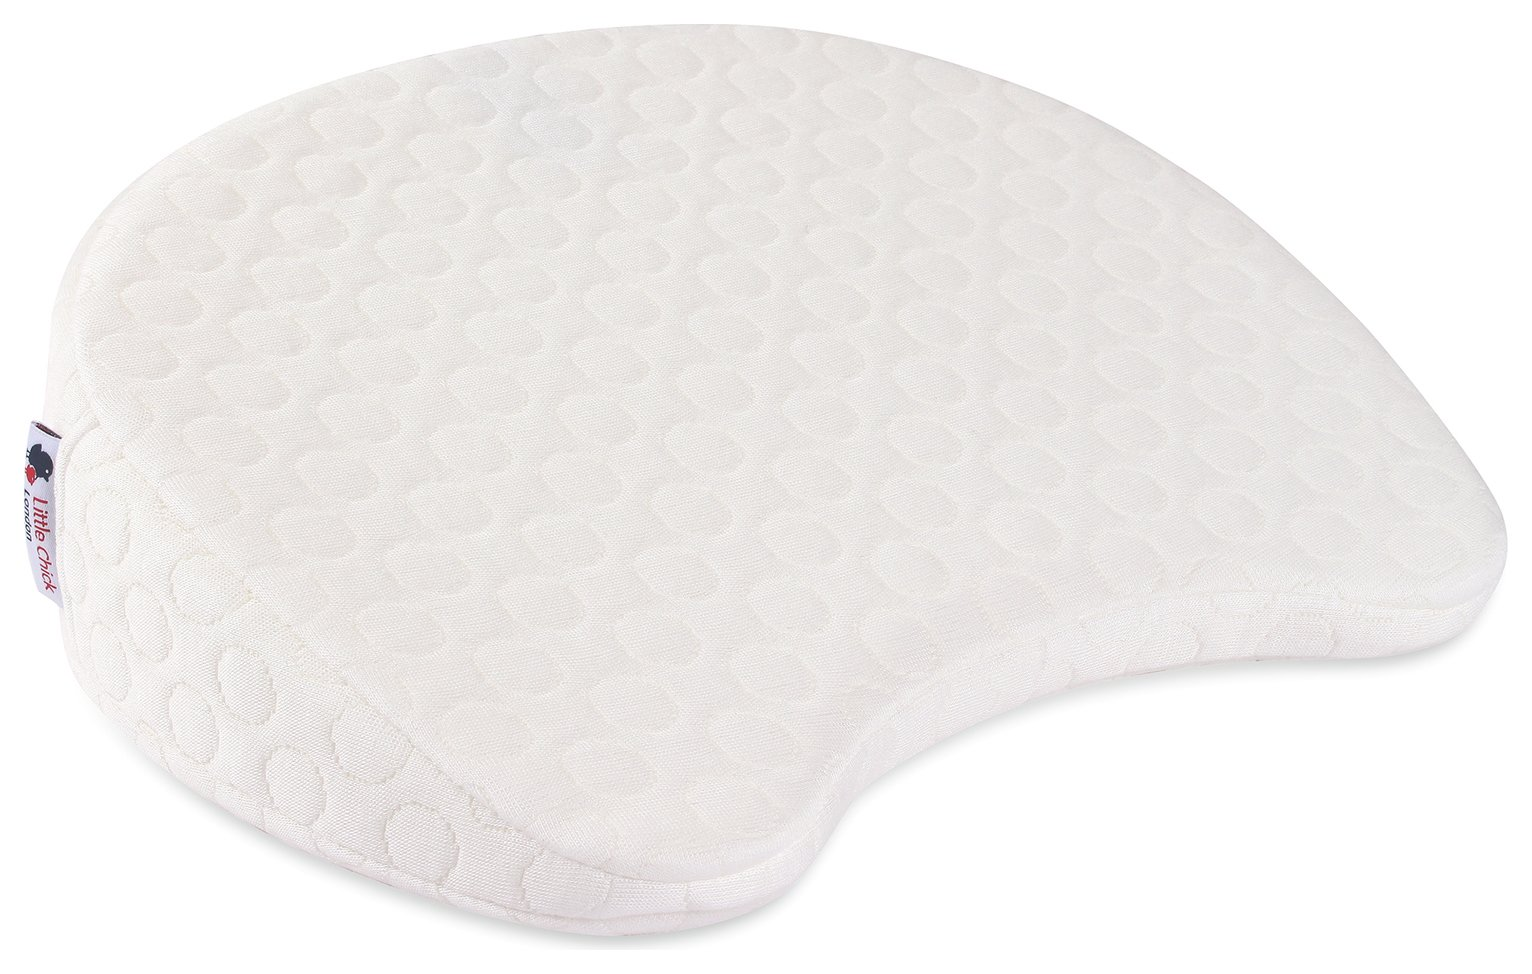 Little Chick 4 In 1 Maternity Support Pillow